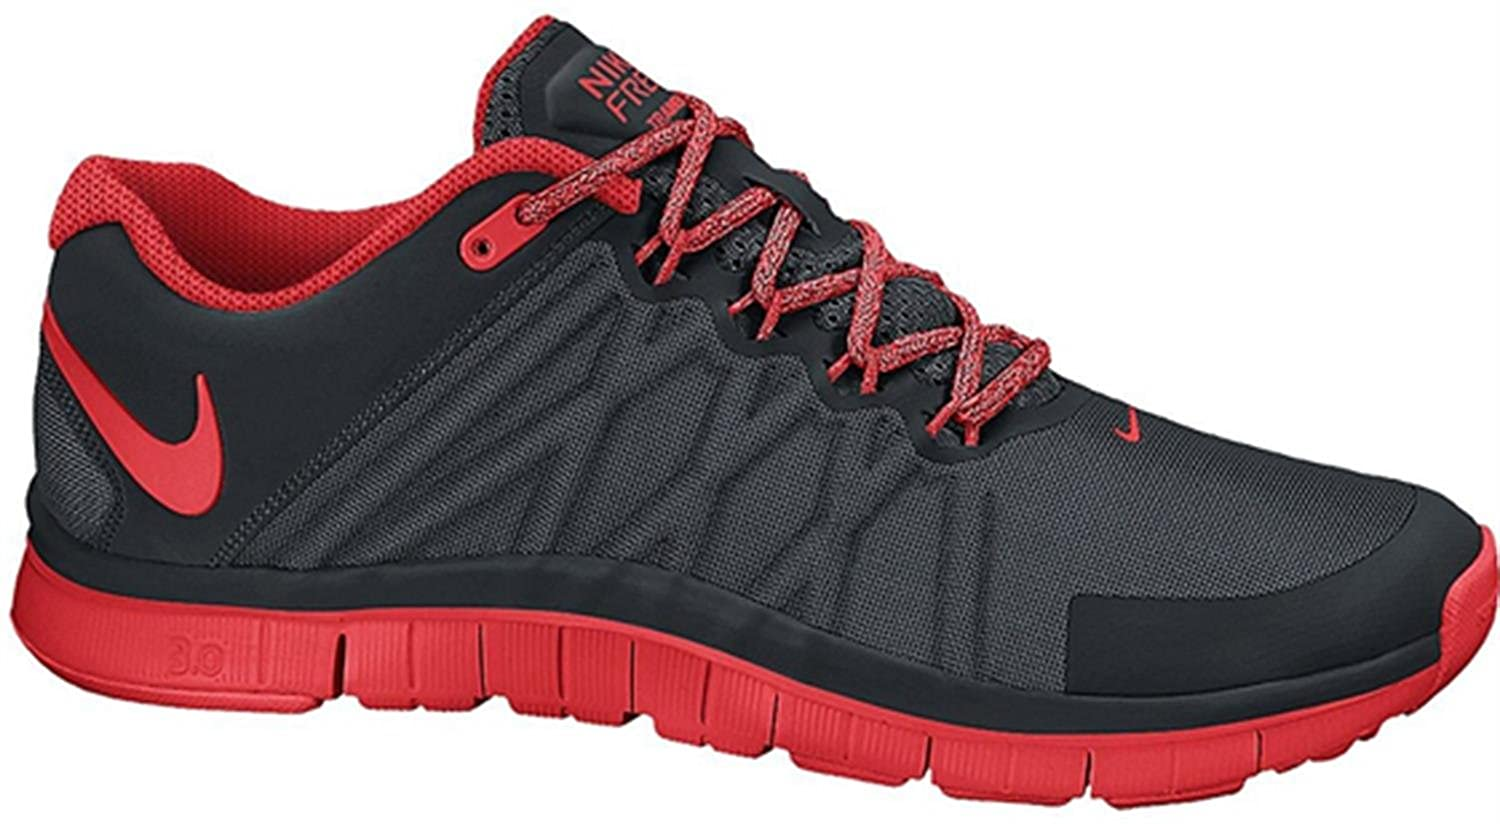 Nike Free Trainer 3.0 630856_Free Trainer 3.0_Unisex-Erwachsene Unisex-Erwachsene Laufschuhe Training